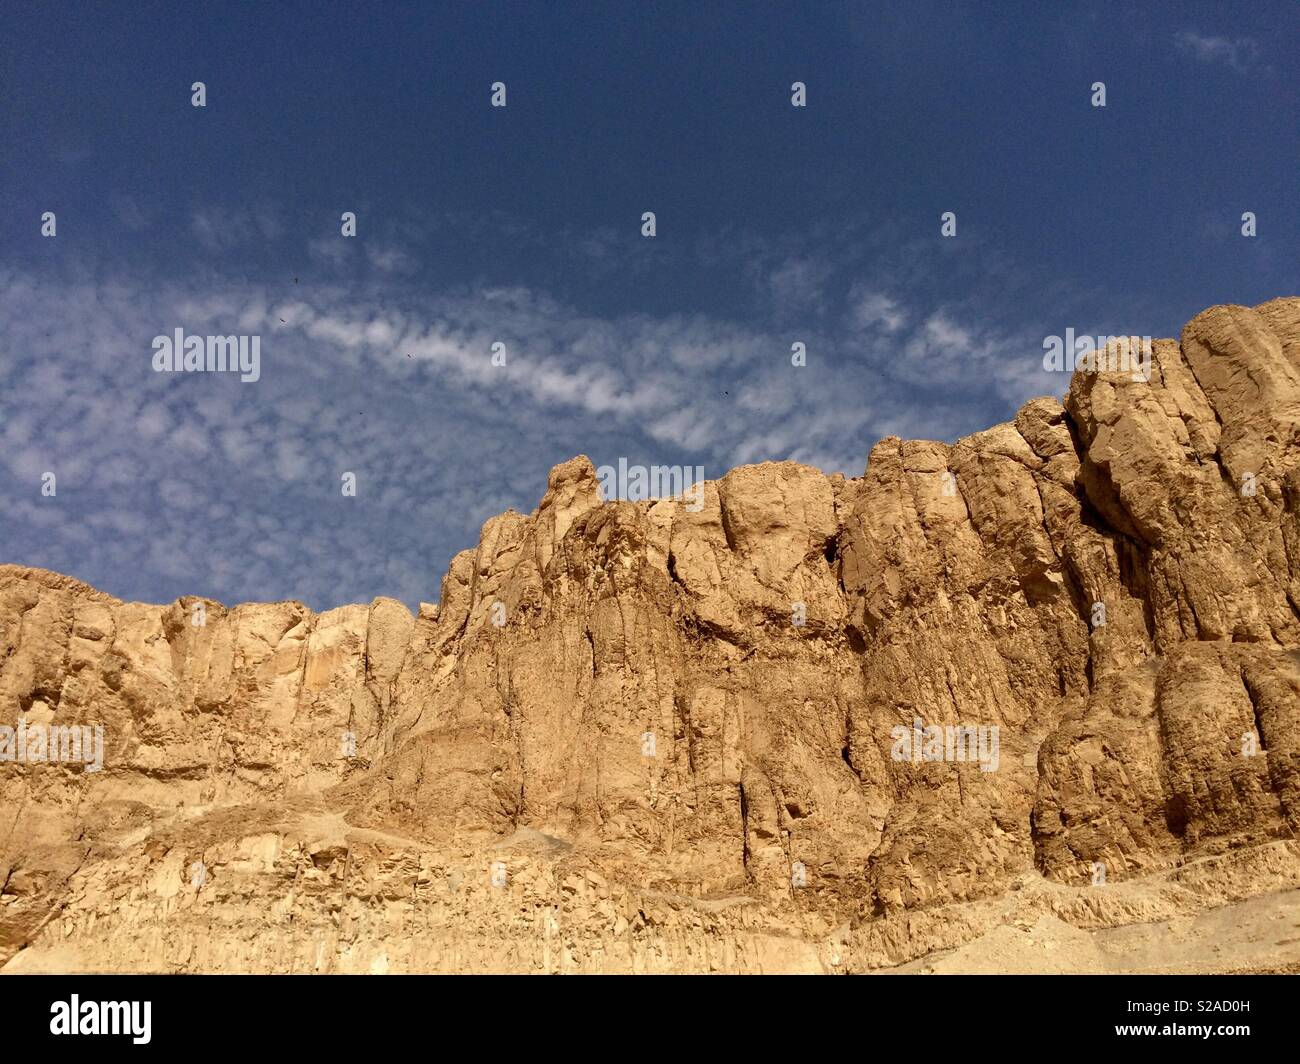 Cliffs in the Valley of the Kings - Stock Image